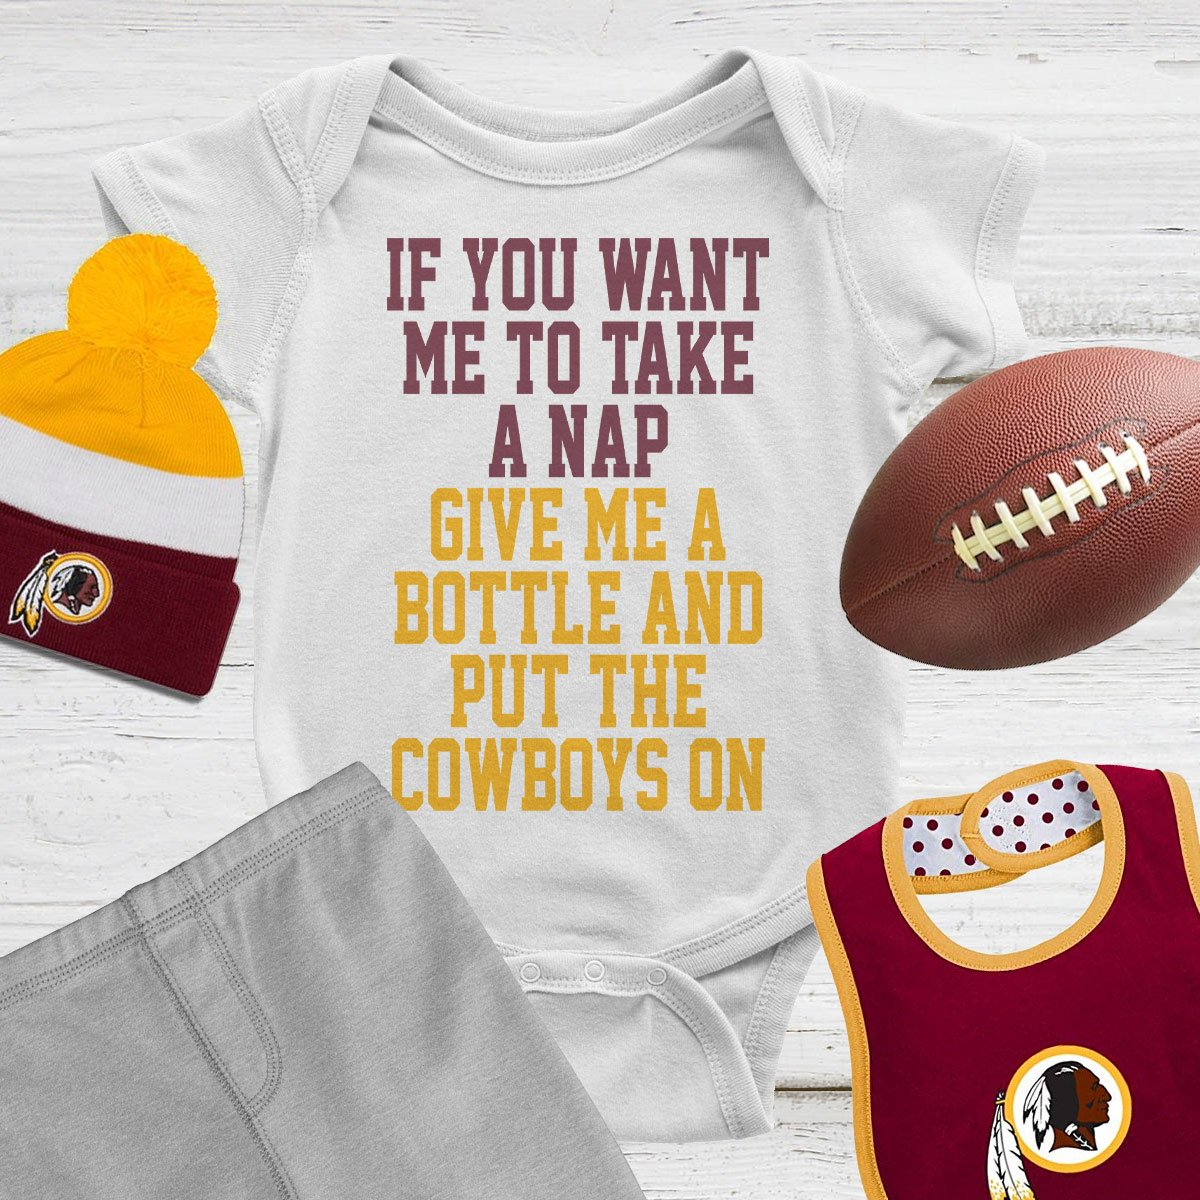 Need your little Skins fan to take a nap?  We know something that might work!  HTTR!  https://www. bratsmack.com/collections/re dskins/products/dallas-bores-me-onesie   …  #HTTR #Redskins #Dallassucks <br>http://pic.twitter.com/G4NJ1uGfp2